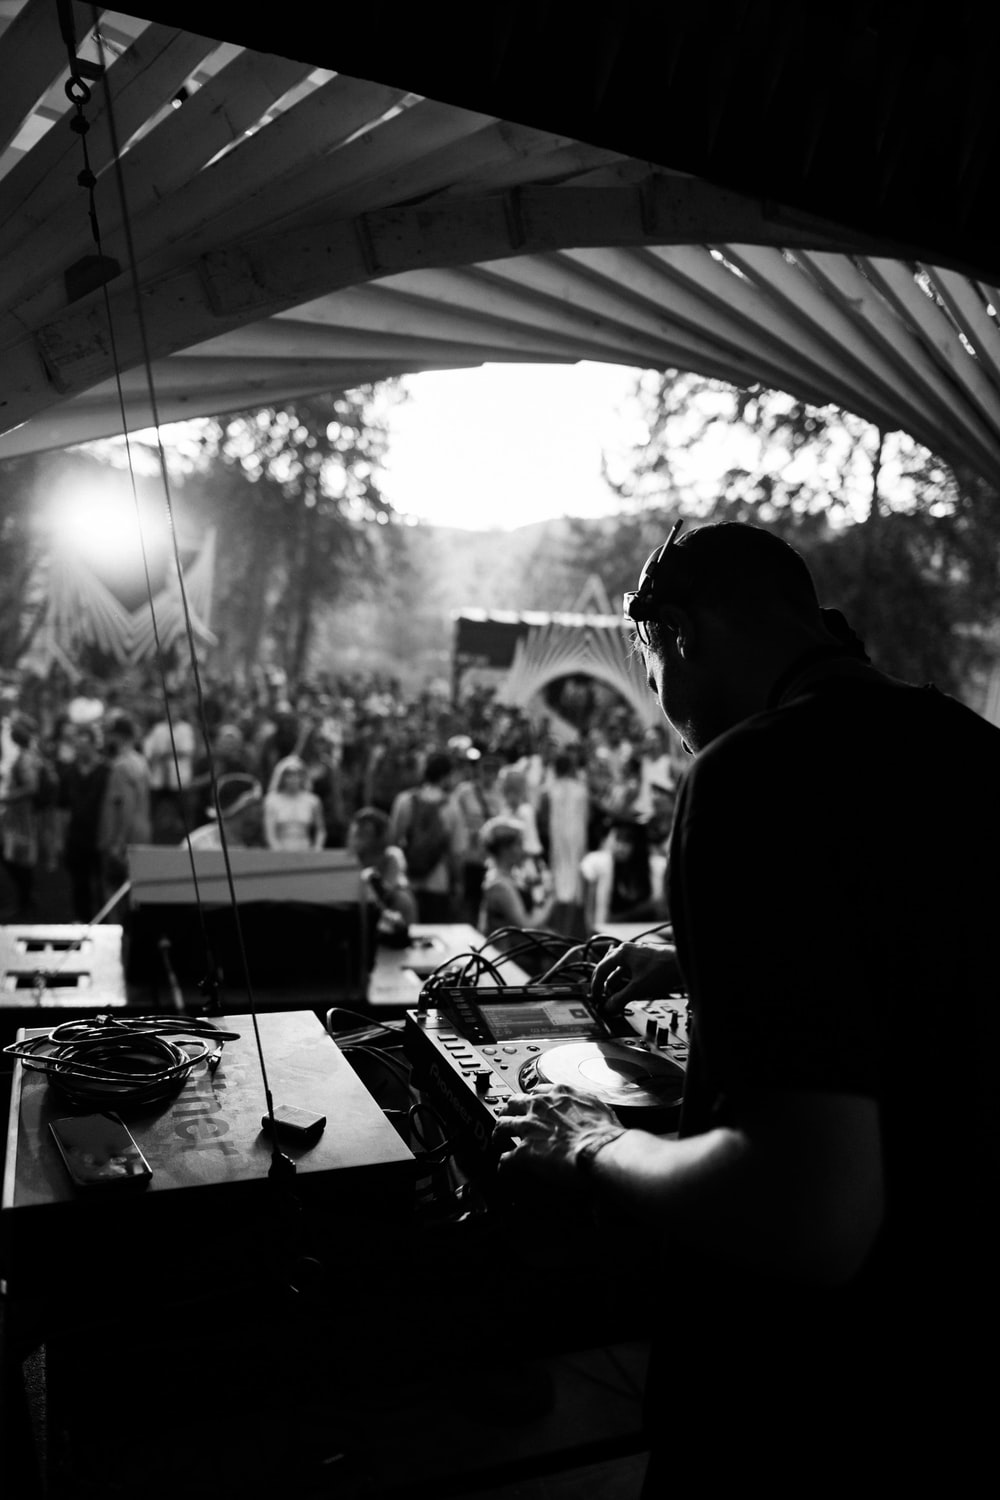 grayscale photo of man in black shirt playing dj controller